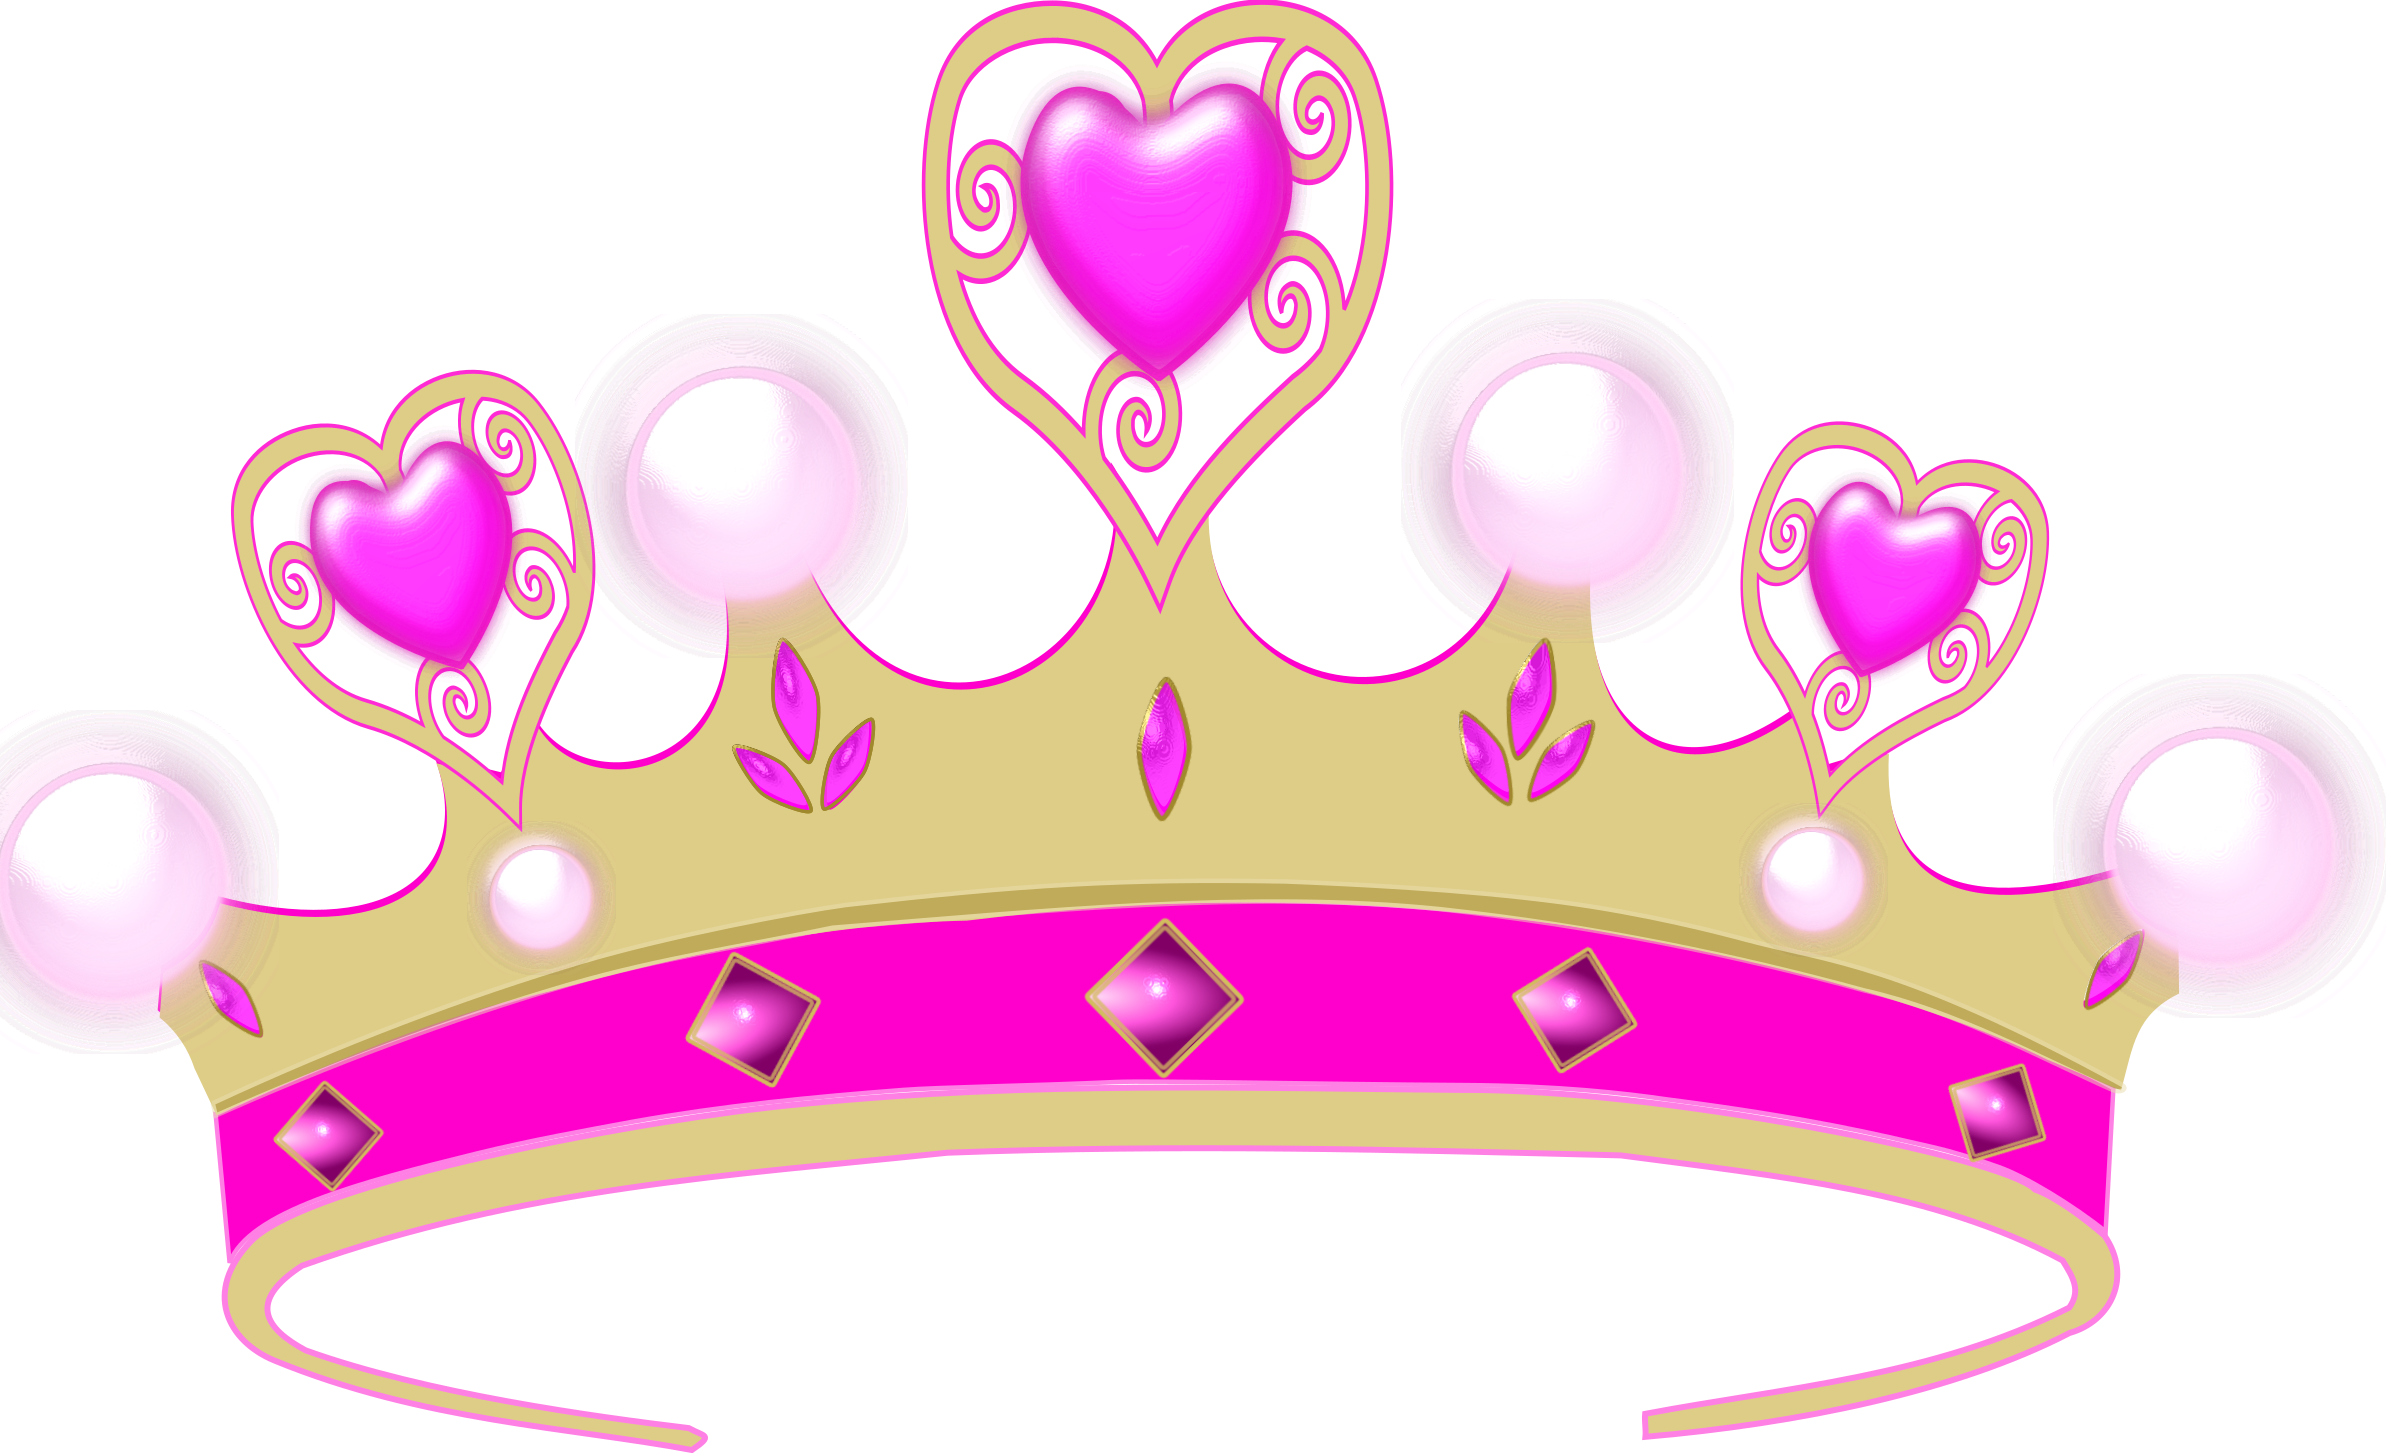 royalty free stock Clipart